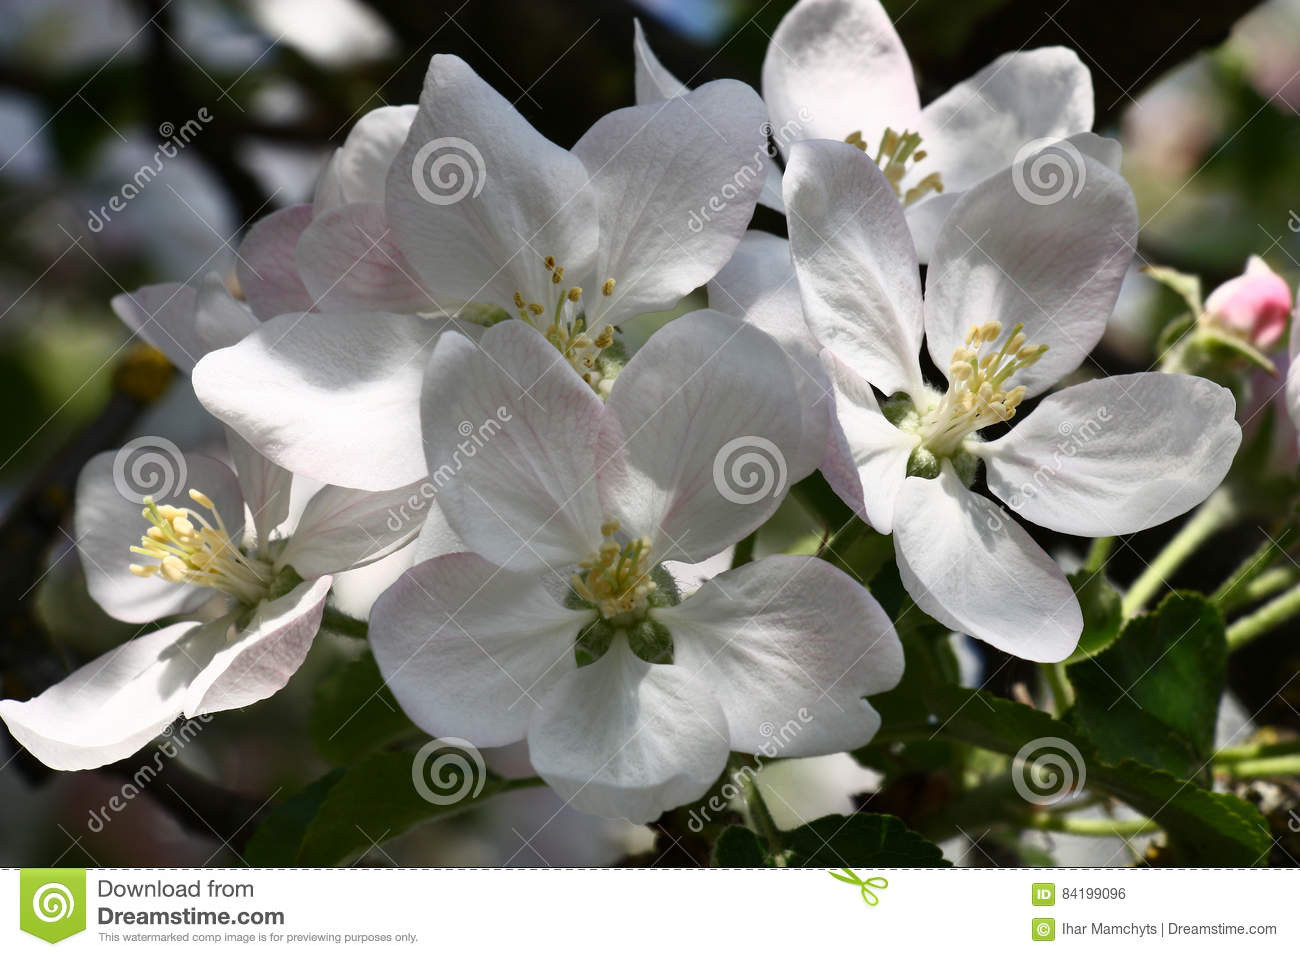 Spring large flowers of an apple tree stock photo image of group group of large flowers of an apple tree with a pink pattern on white petals mightylinksfo